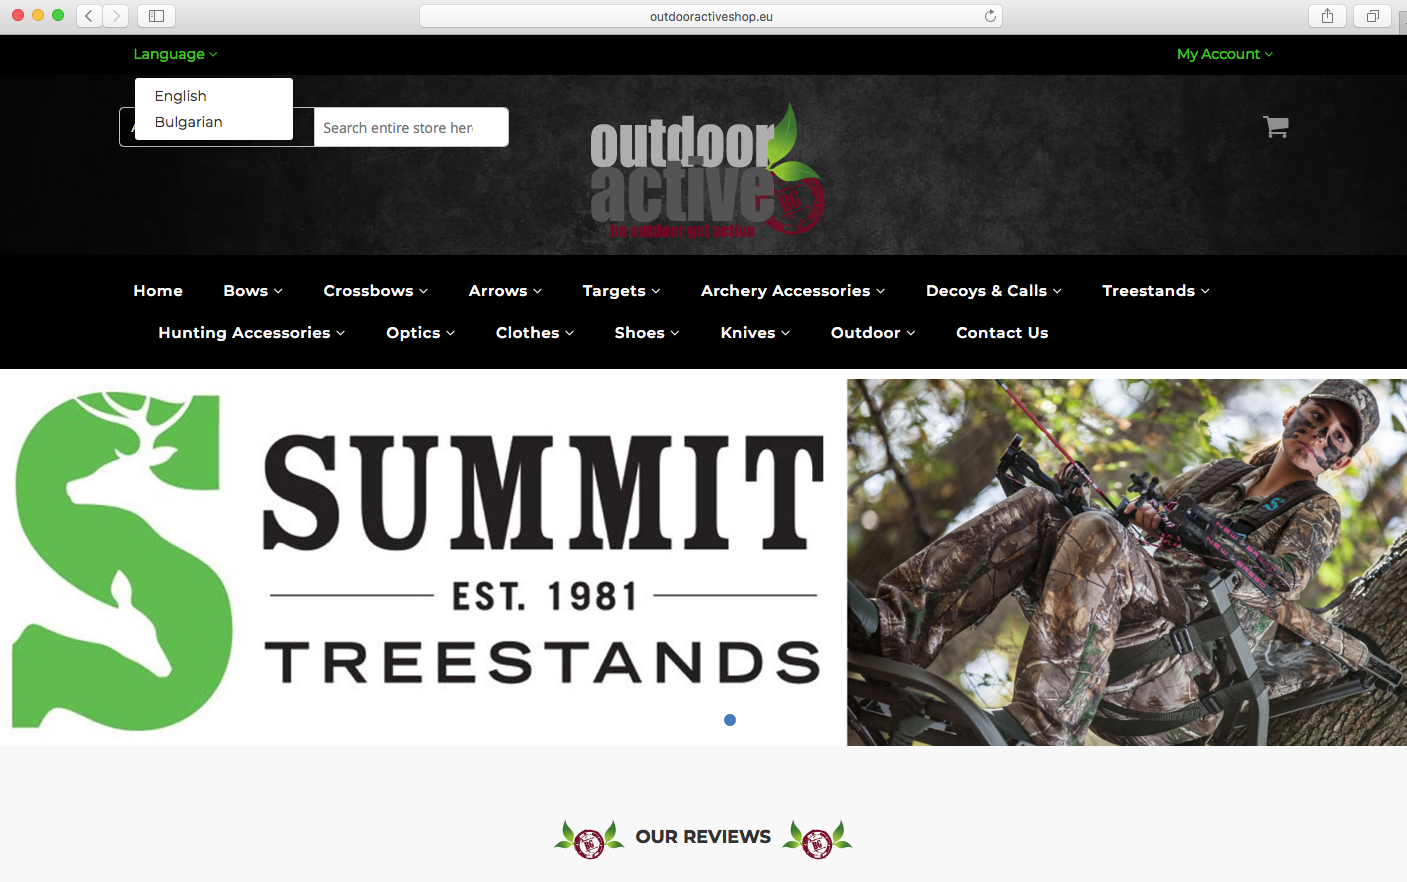 Outdooractiveshop.eu